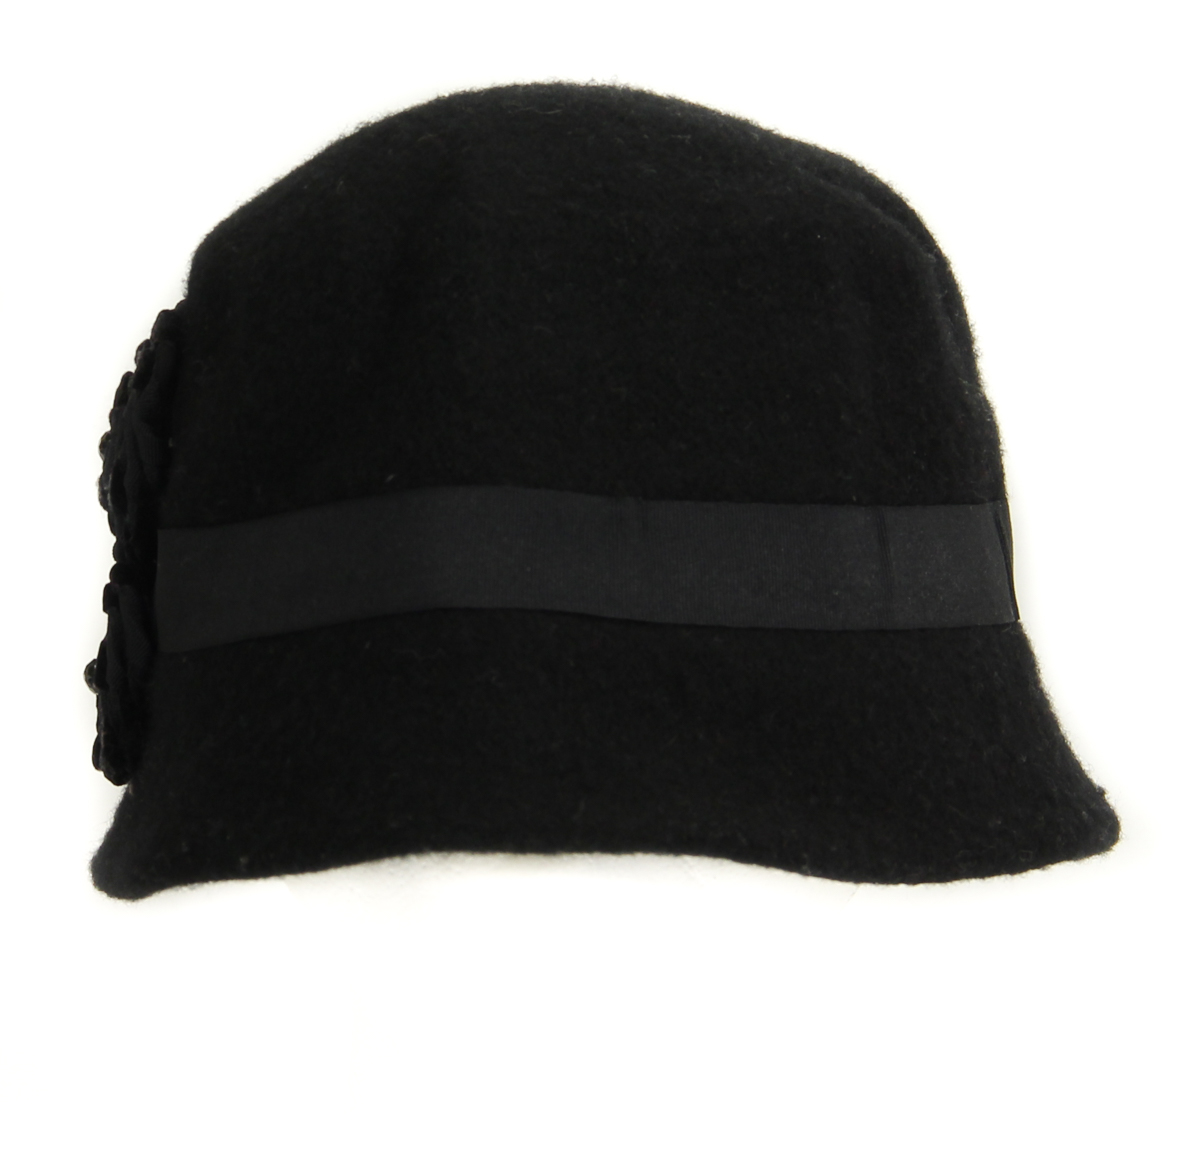 Details about Nine West Women s Black Cloche Hat With Three Side Flowers f48f0150085